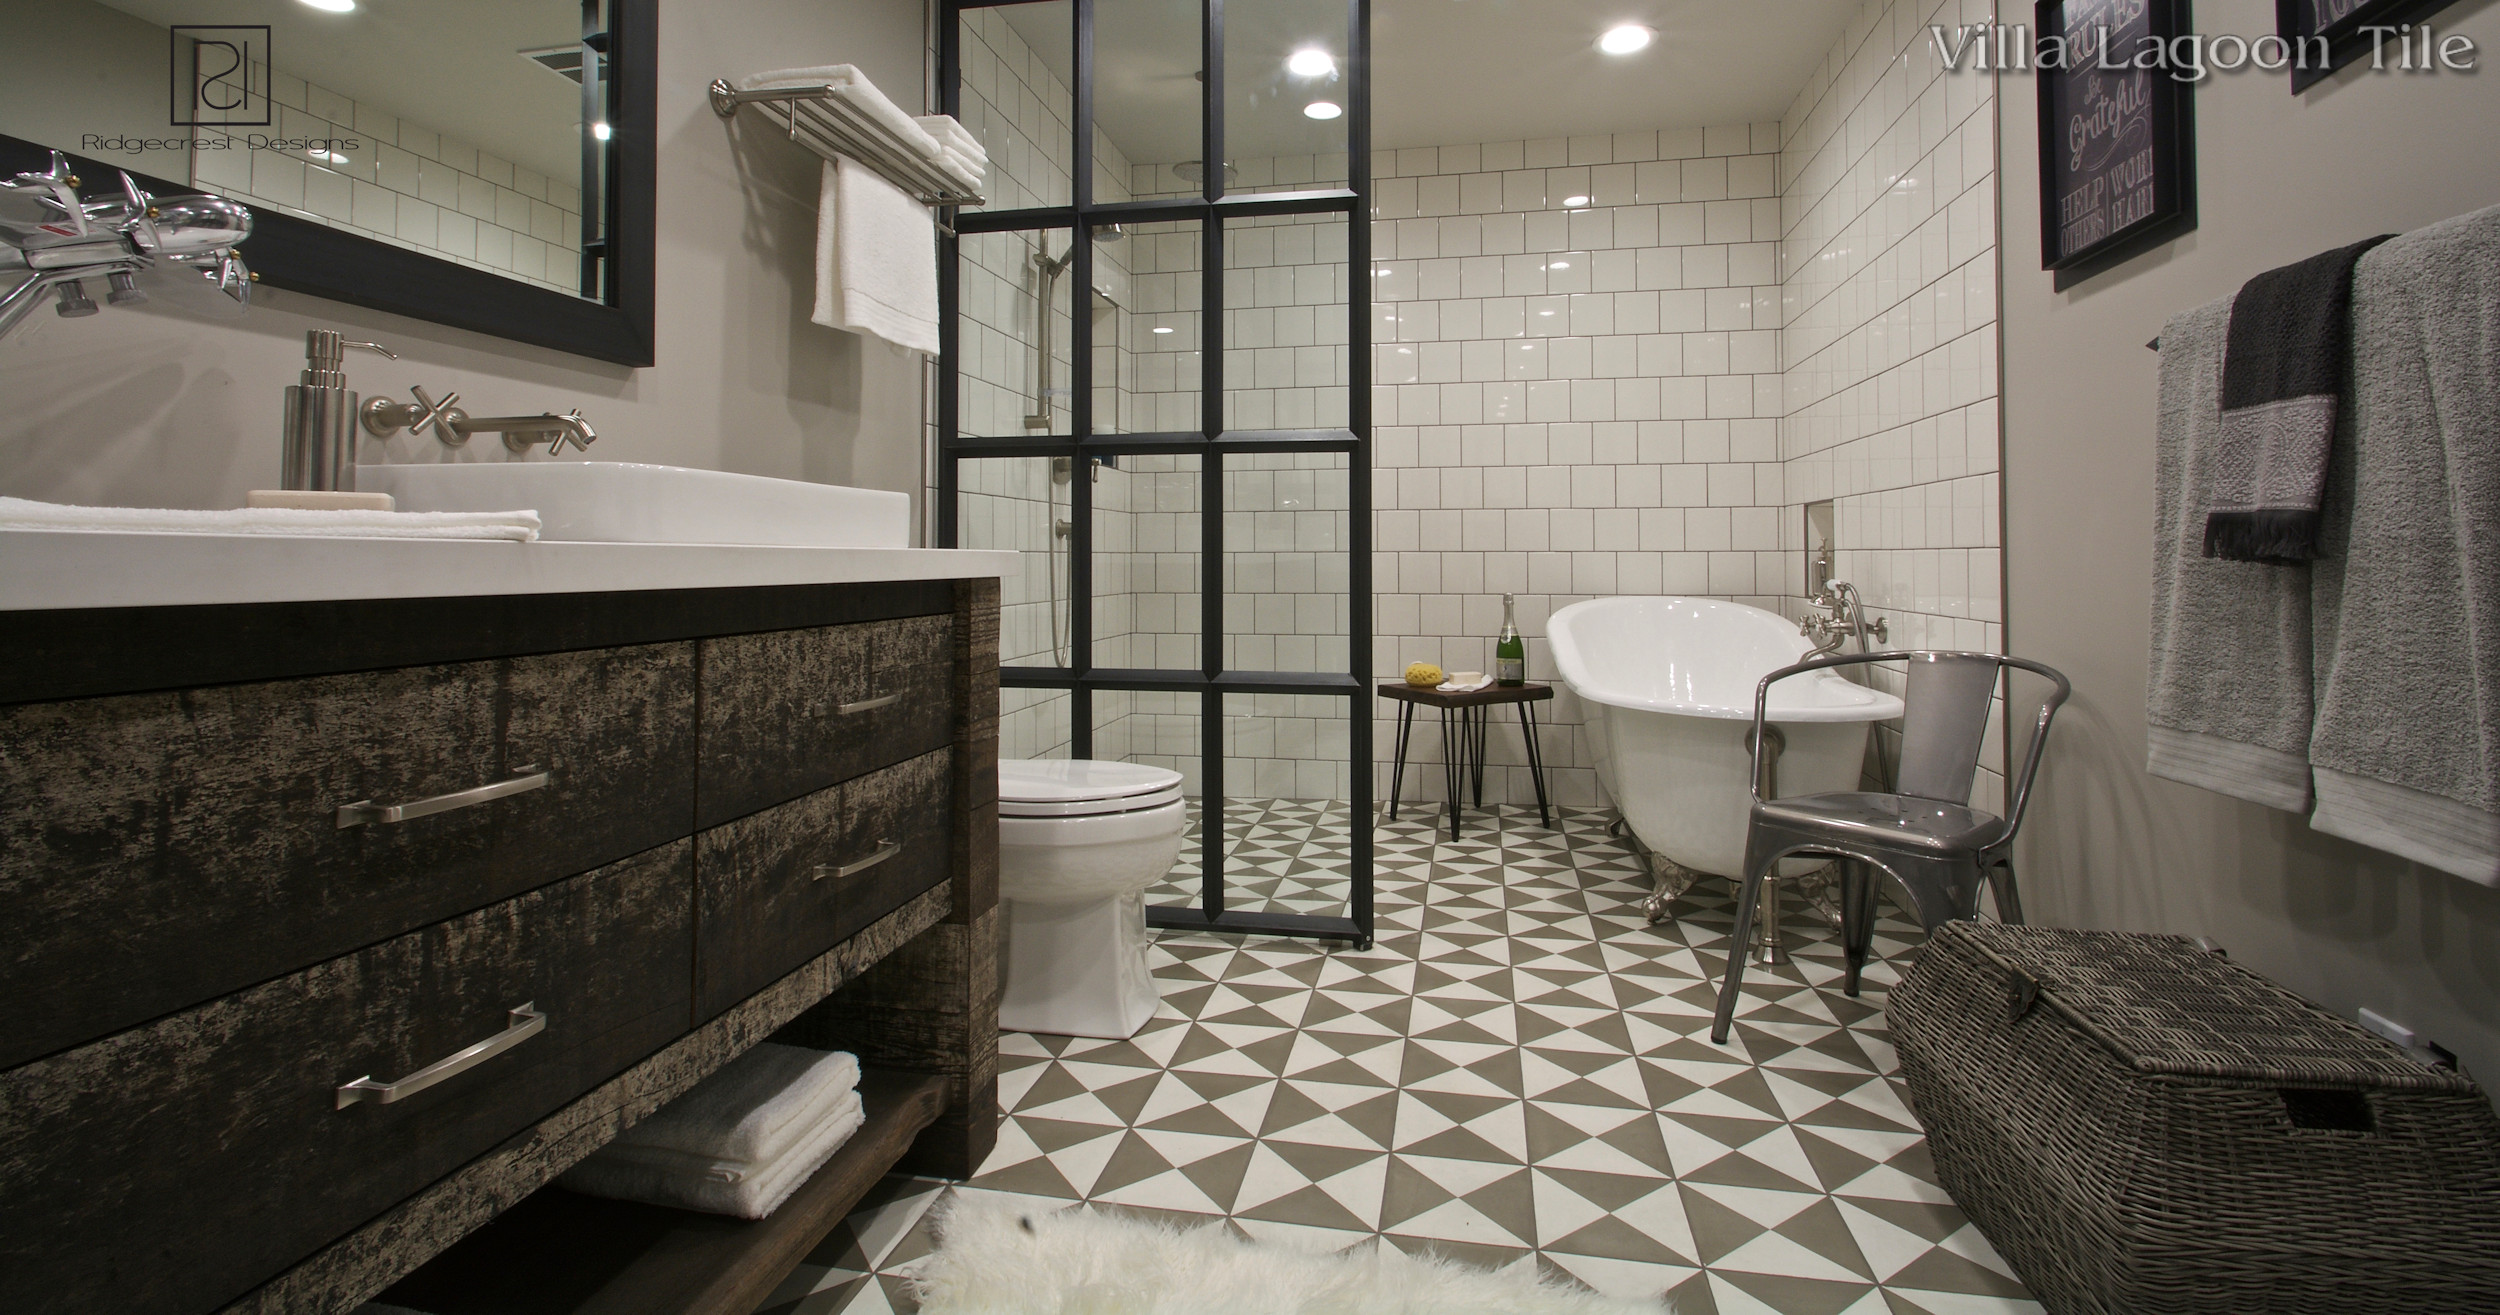 Delicieux Click For Larger Image... Tugboat Featherstone And White Cement Tile  Bathroom ...